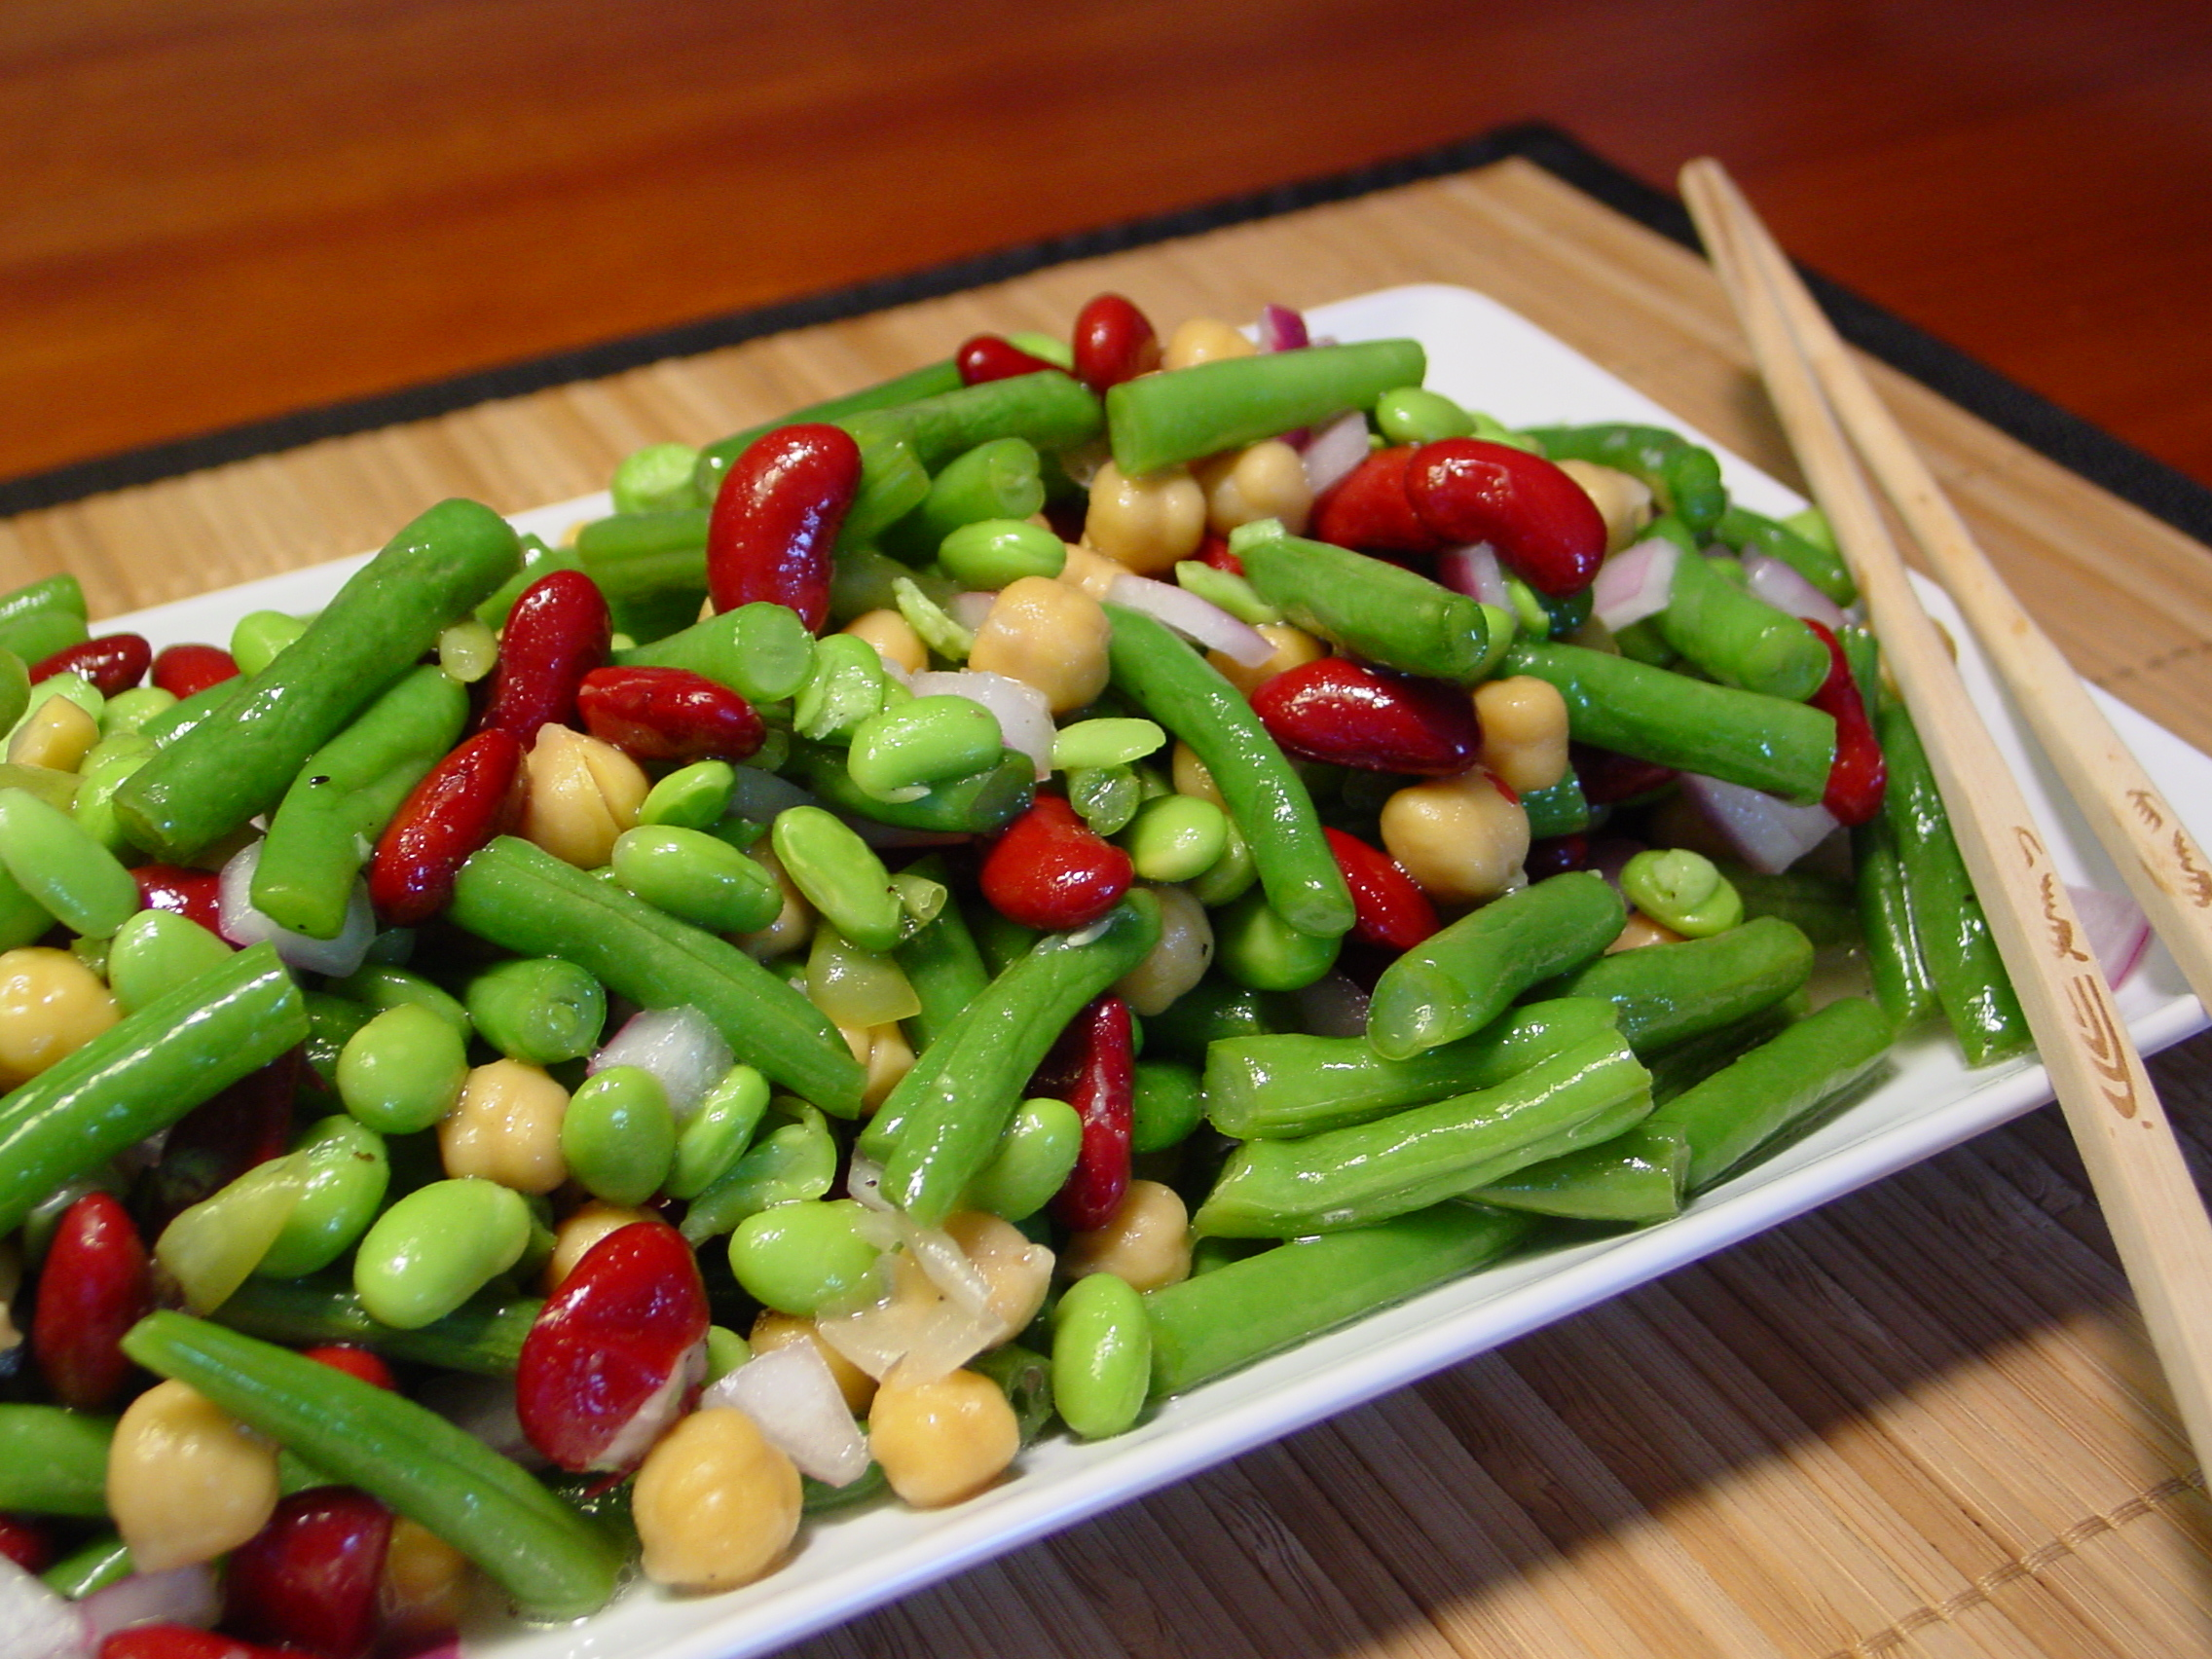 Jeff's Favorite Asian Sweet & Sour Bean Salad